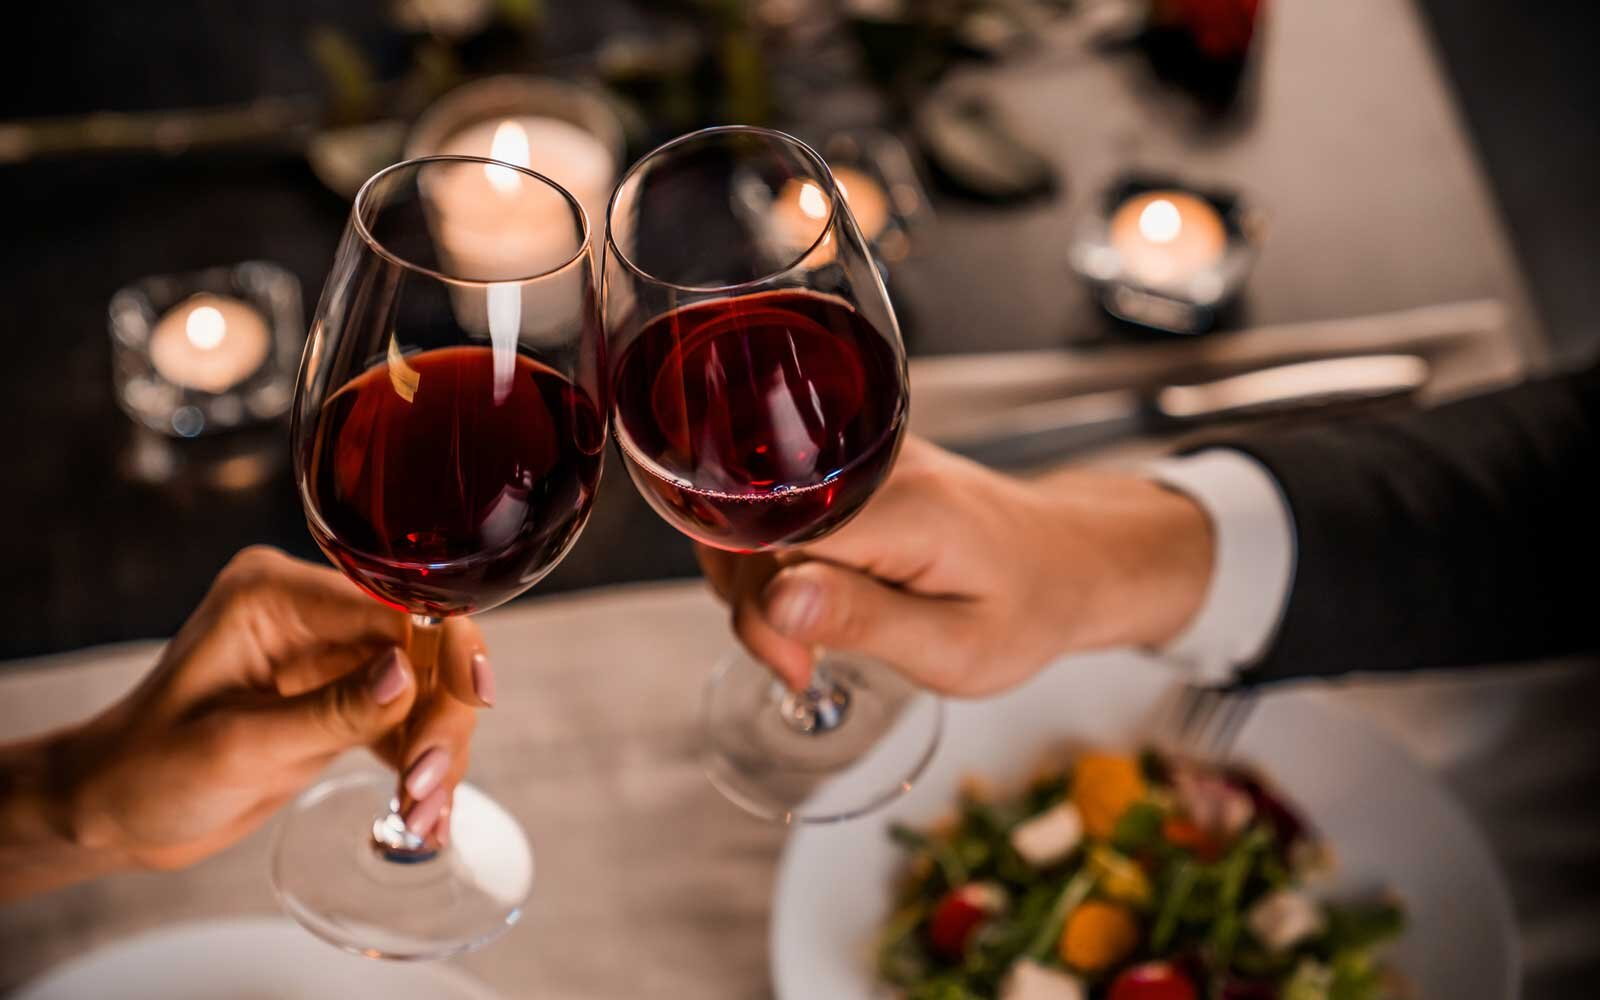 100 Most Romantic Restaurants For 2020 According To Opentable Travel Leisure